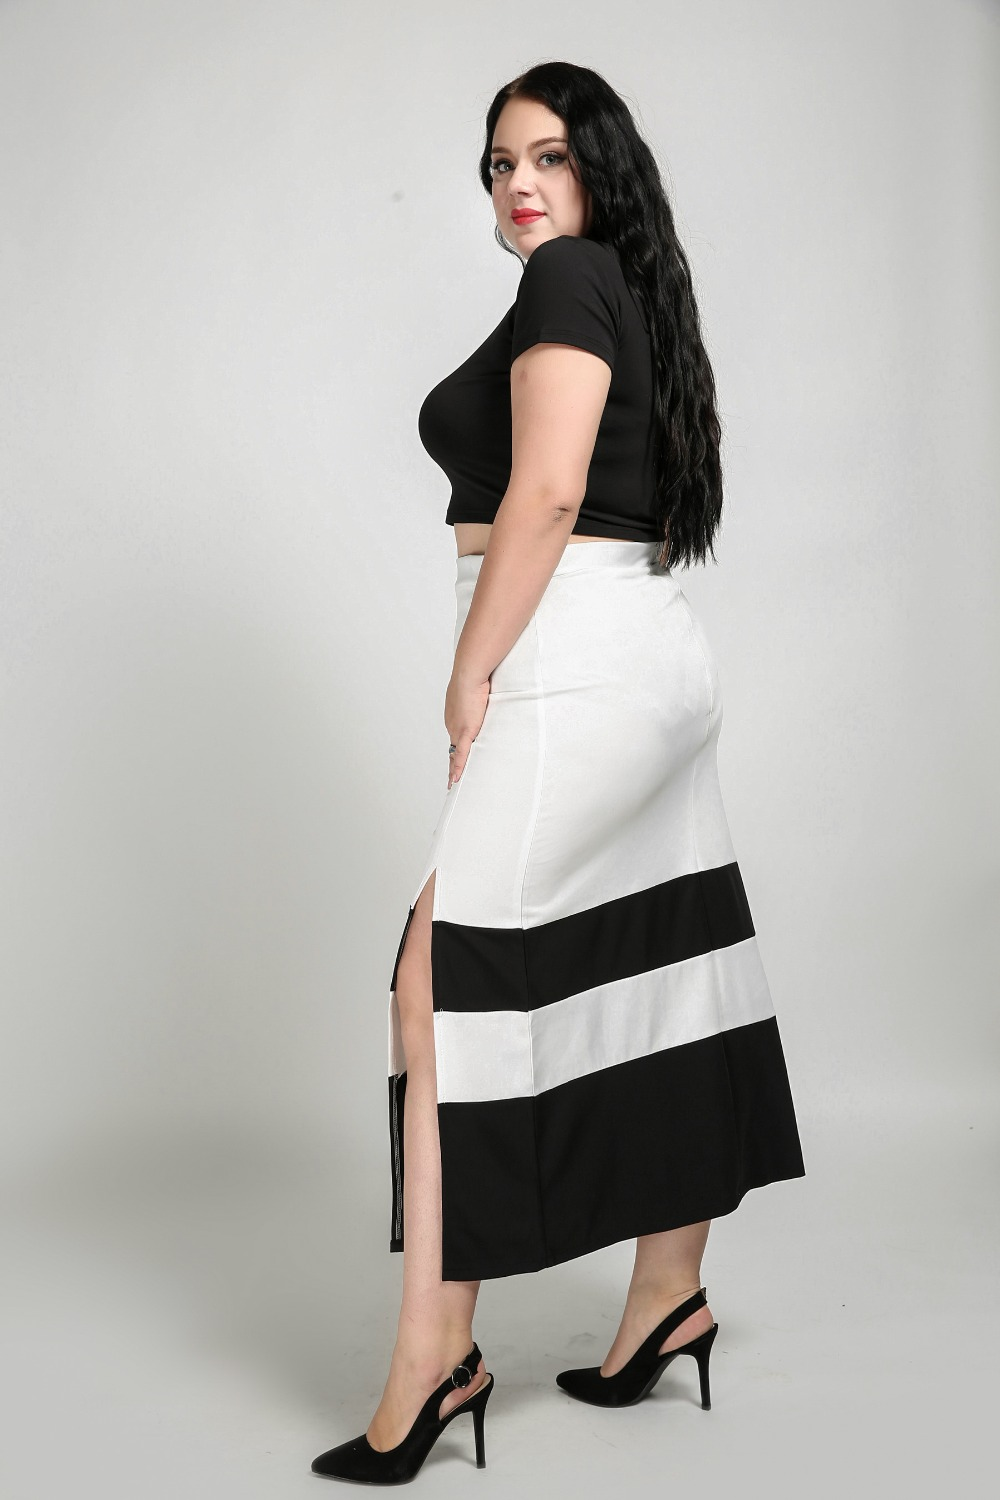 45605ef672f24 Women s Sexy High Waist Plus Size Maxi Skirt Black And White Patchwork Casual  Skirt With Slits Sides Autumn Winter Skirt-in Skirts from Women s Clothing  on ...